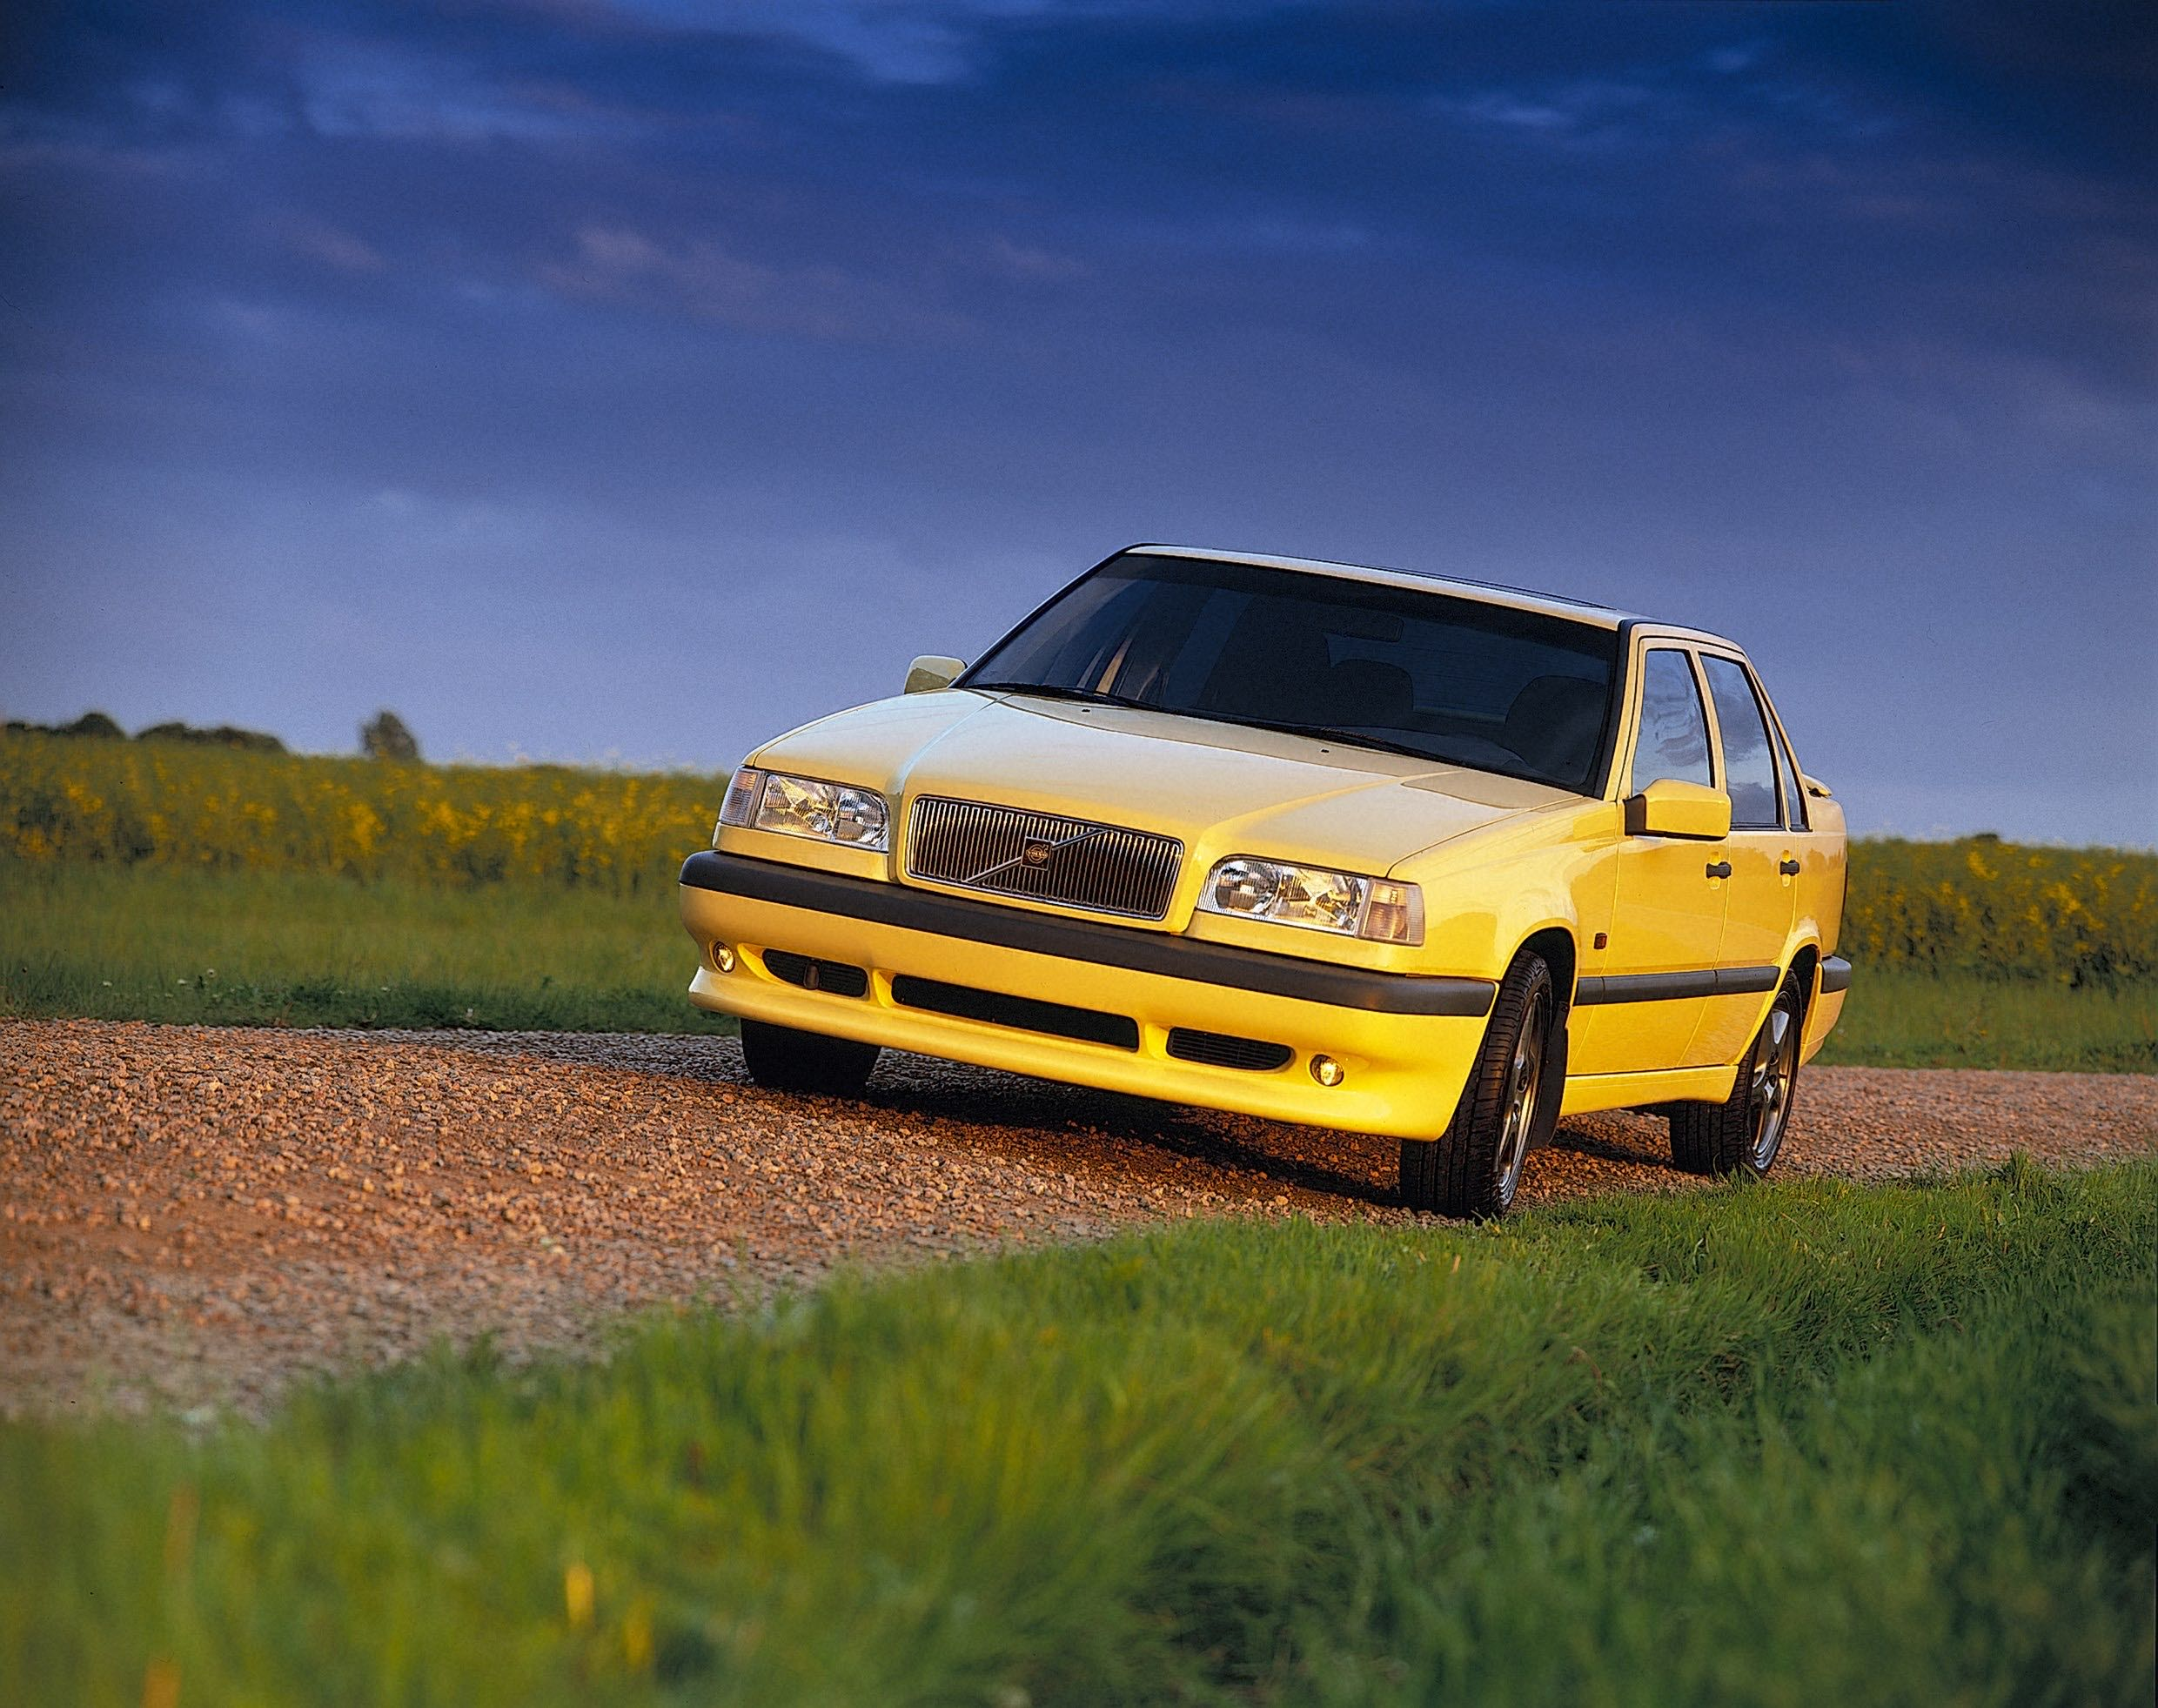 1995 Volvo 850 T 5r, Yellow -  850, 1995, Exterior, Historical, Images, T-5R, Yellow, Yellow T-5R